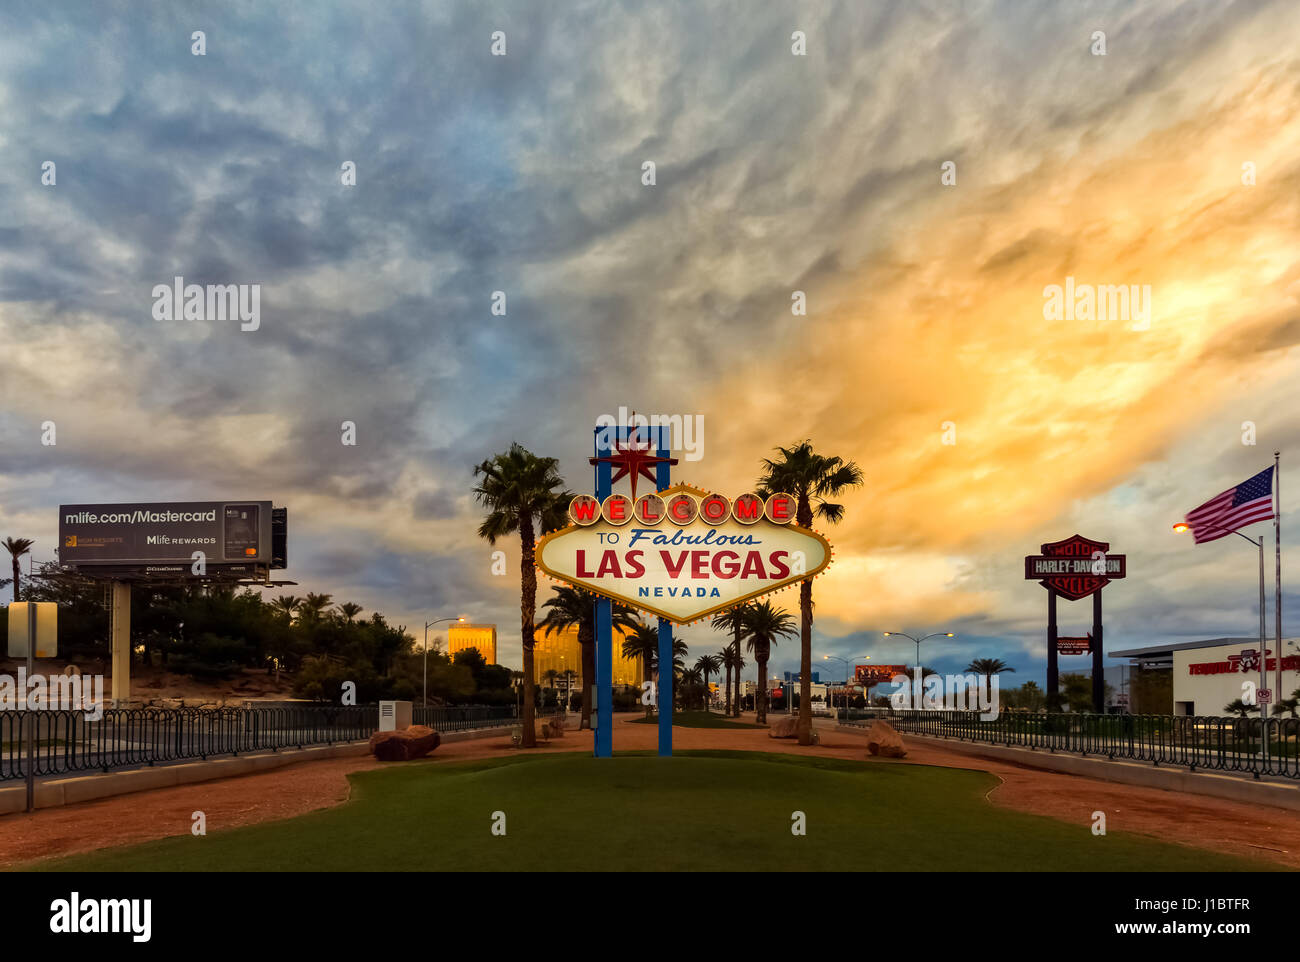 Las Vegas Welcome Sign - Stock Image